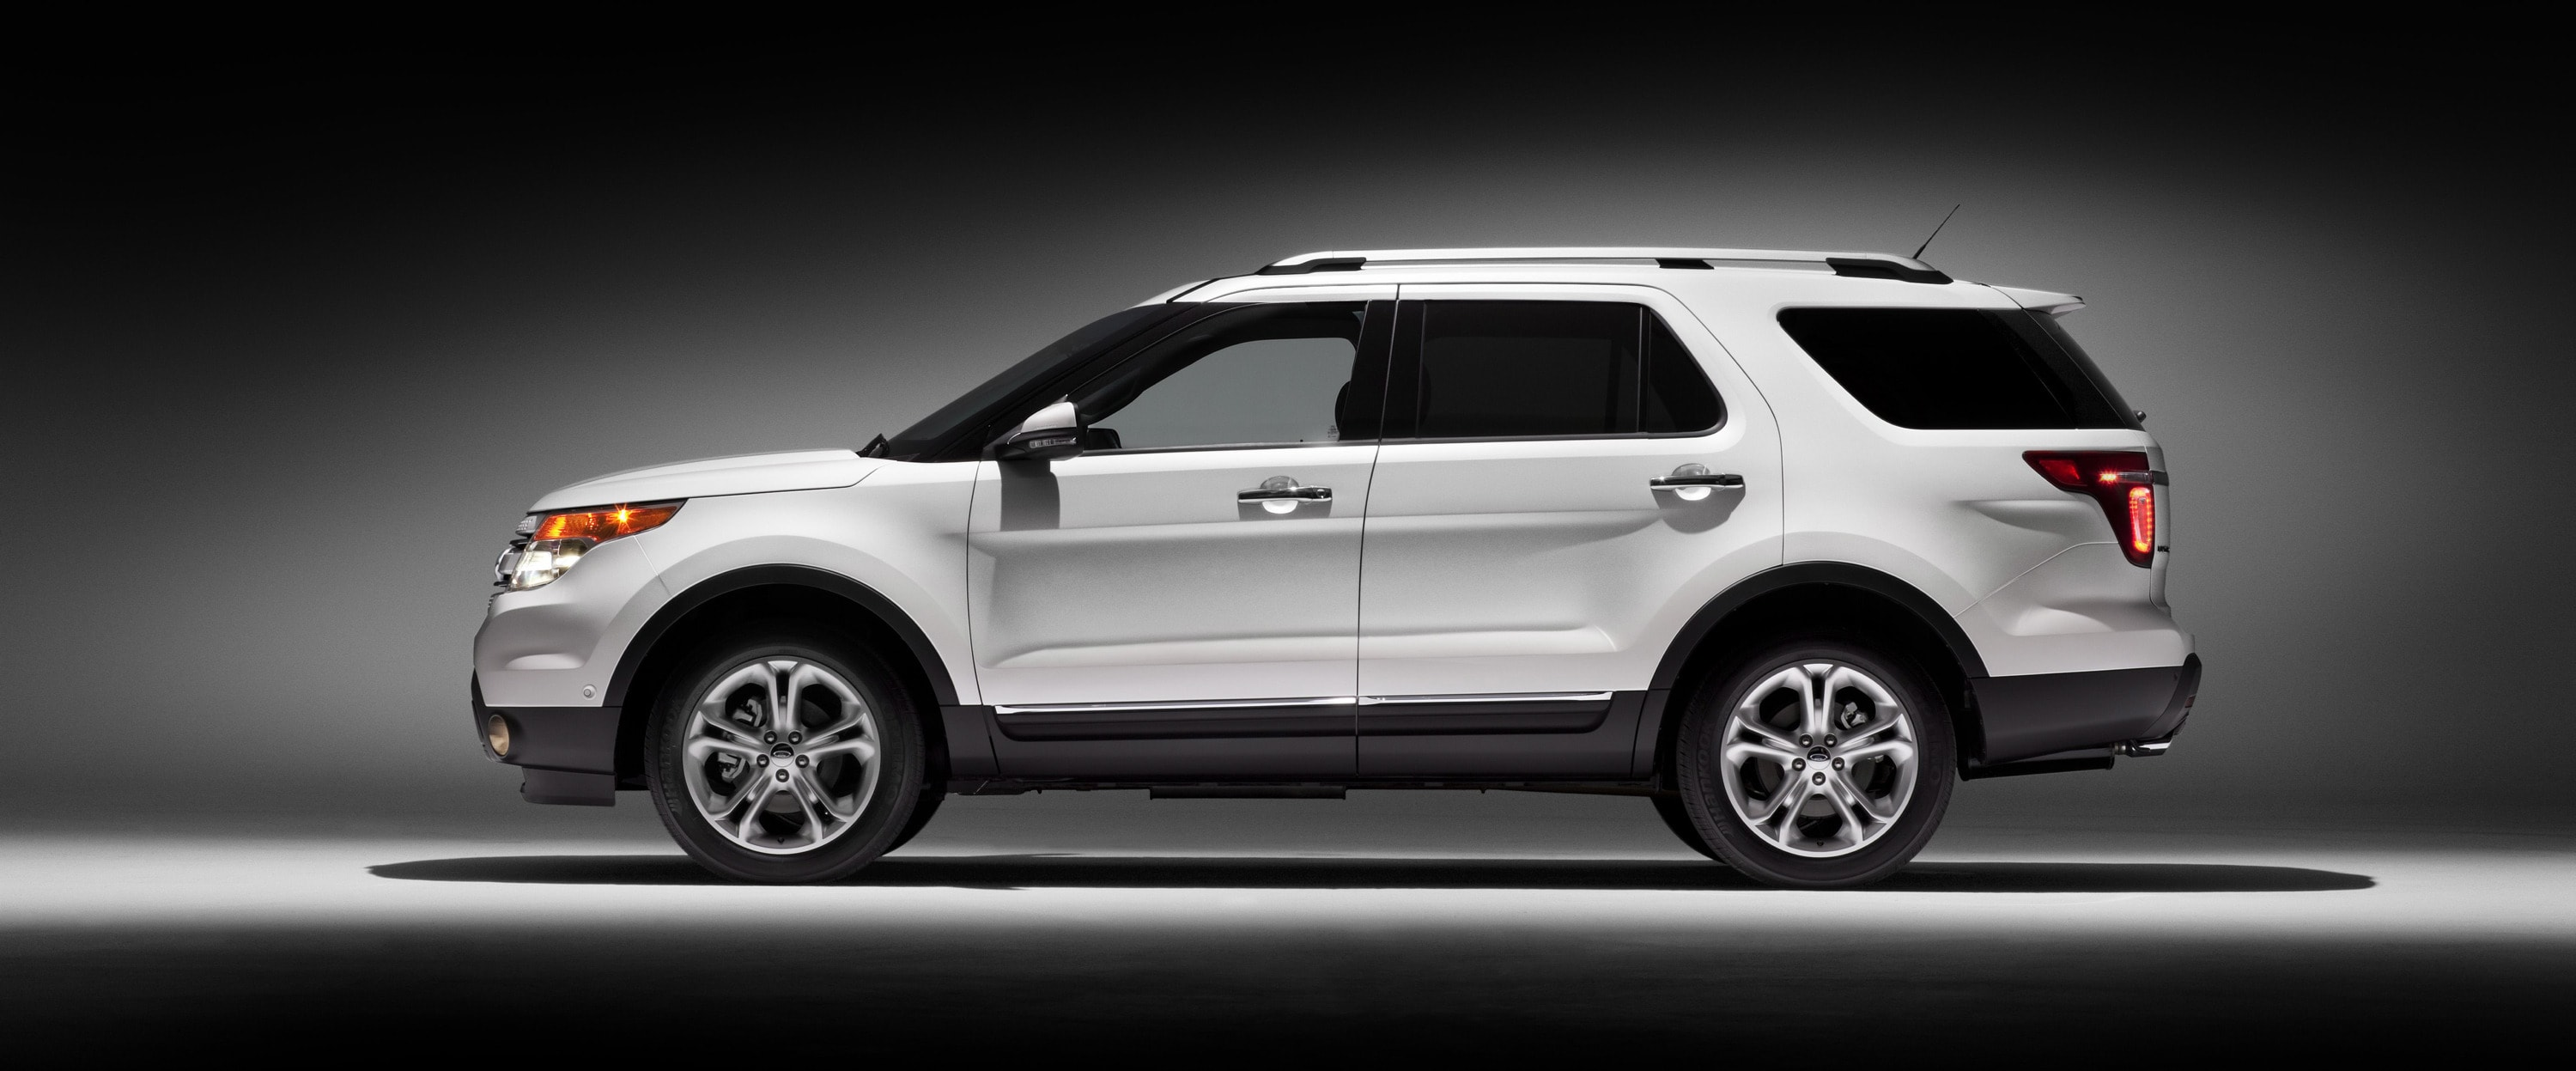 Ford Explorer Background